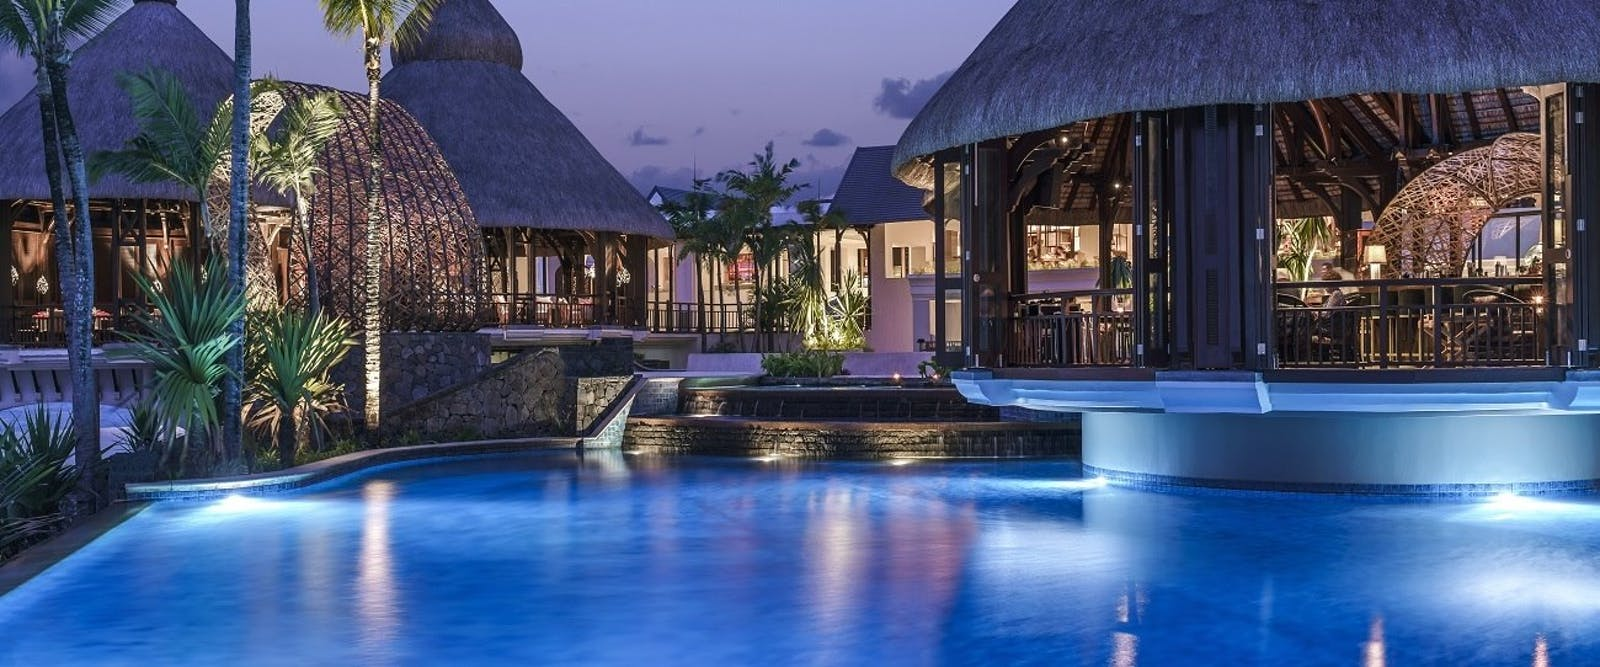 Pool in the evening at Shangri-La's Le Touessrok Resort & Spa